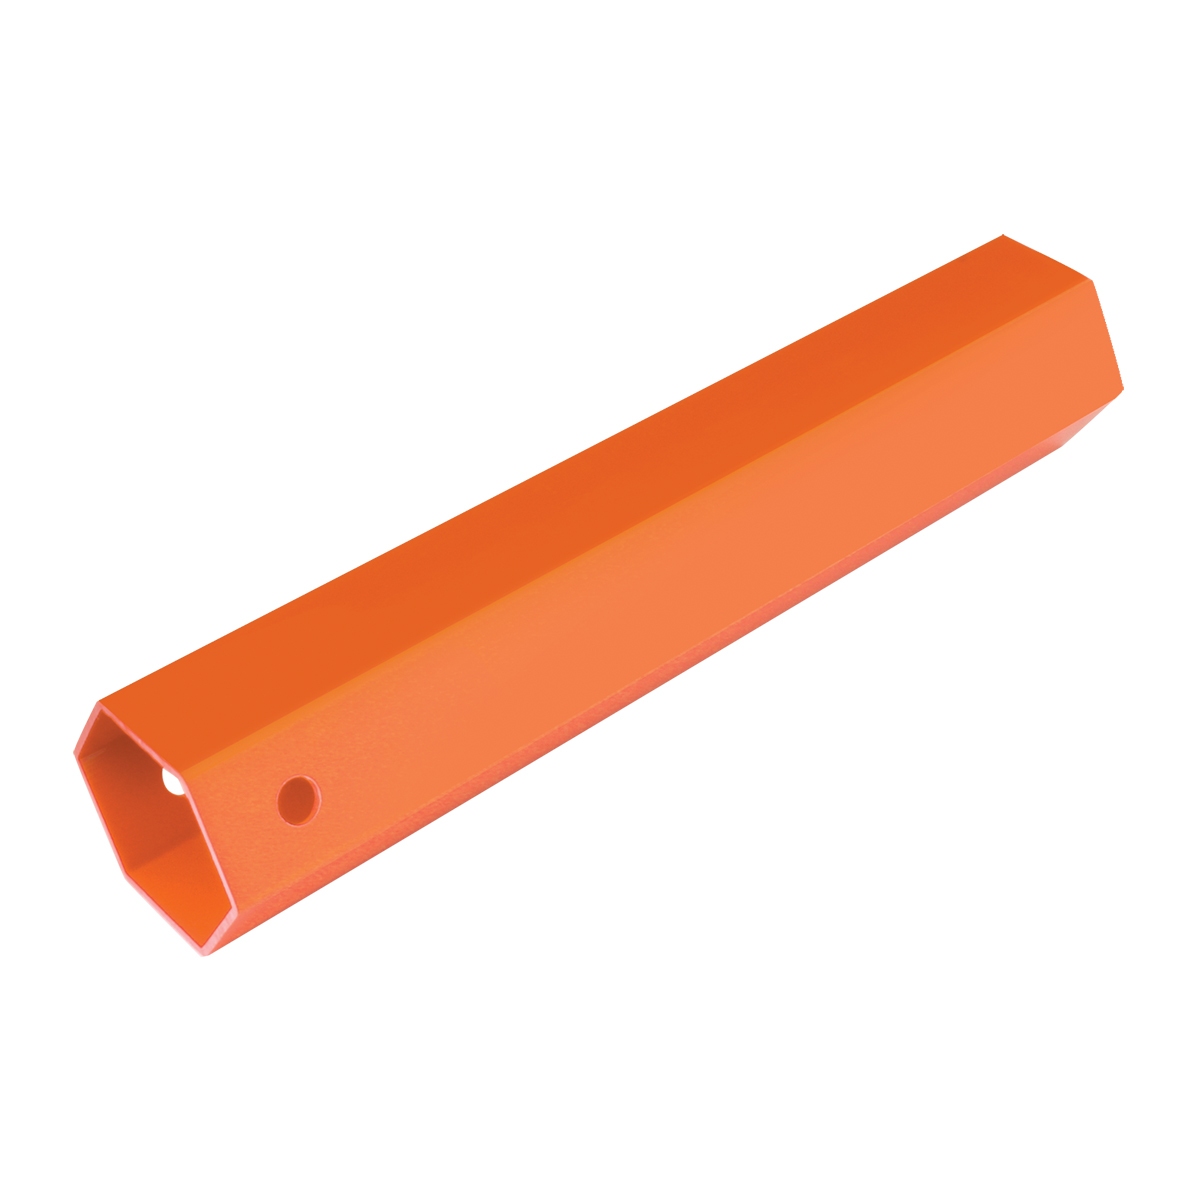 Plastic Axle Cover Lug Nut Cover Installation Tools